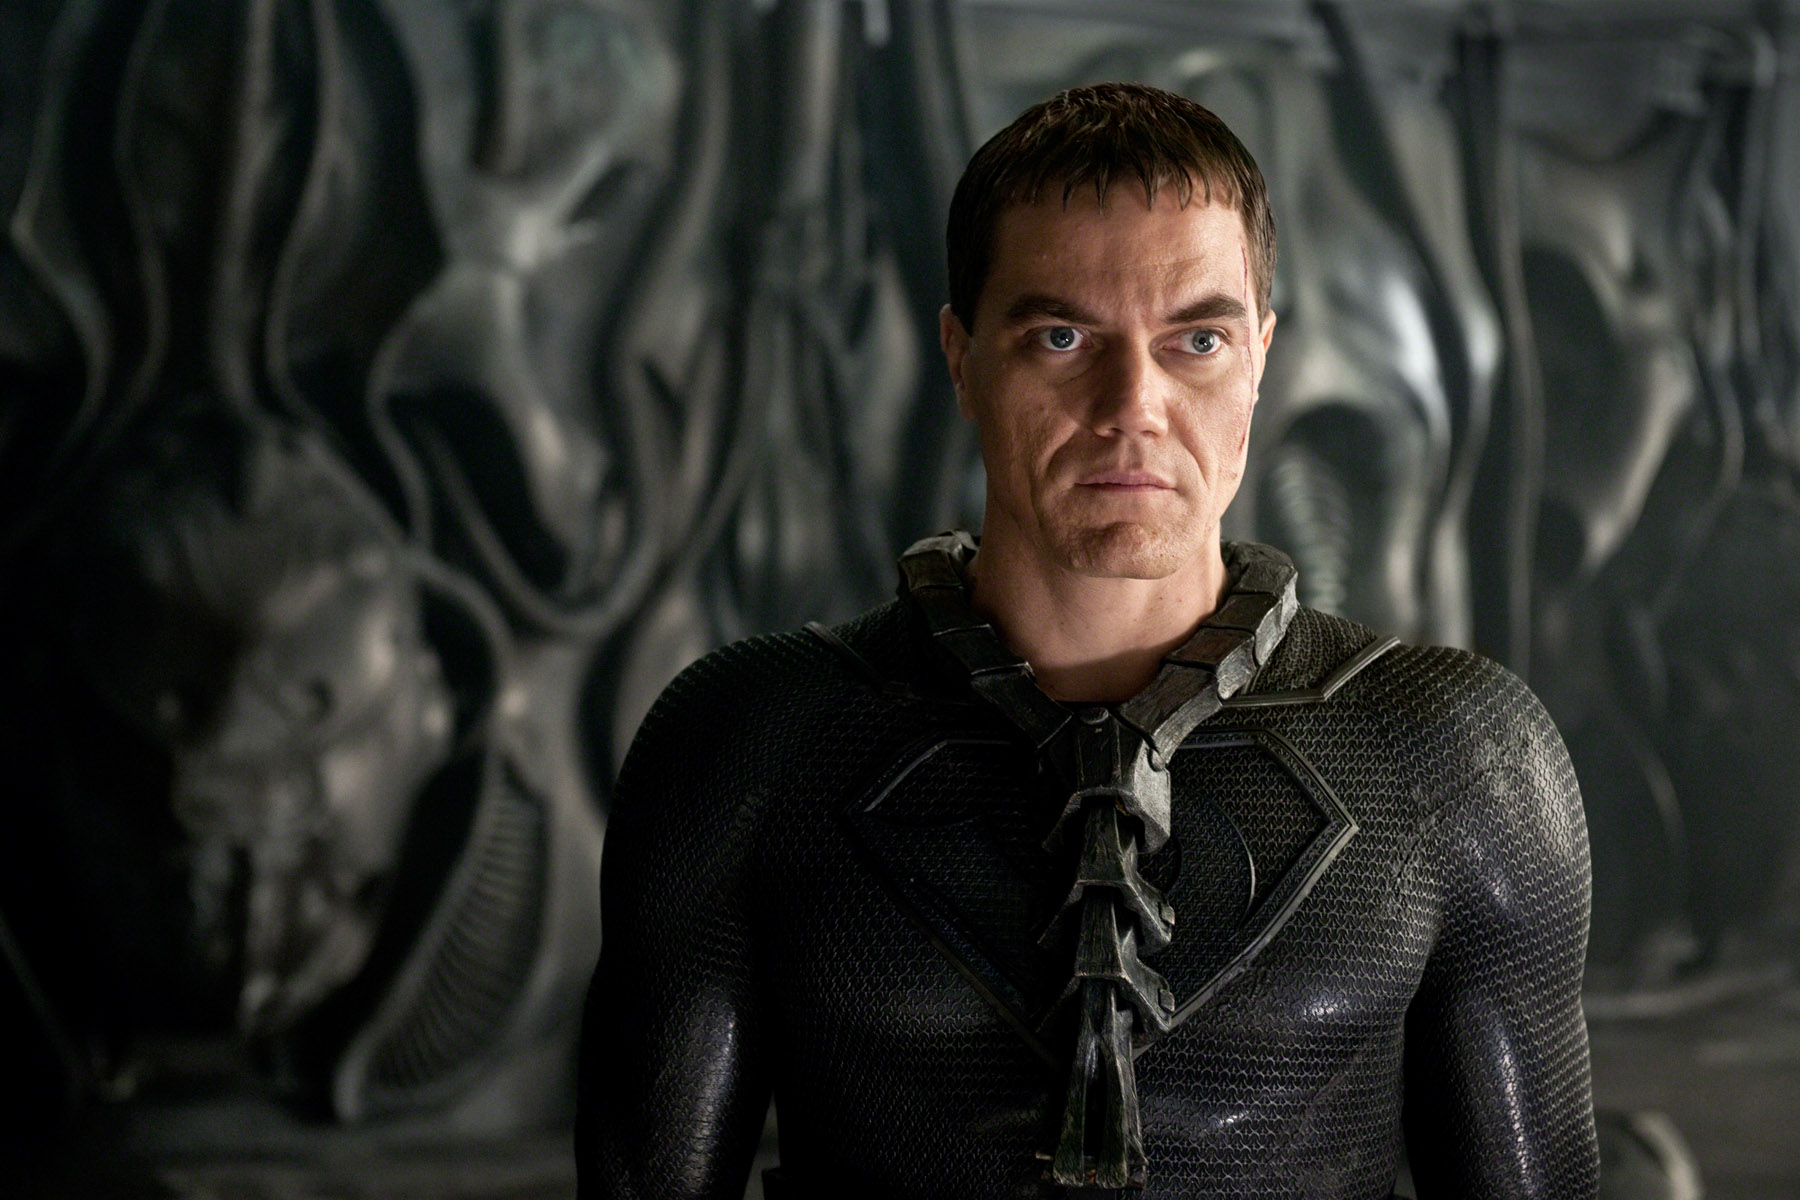 Man of Steel Zod1 The Final Superman: Man of Steel Trailer Hits